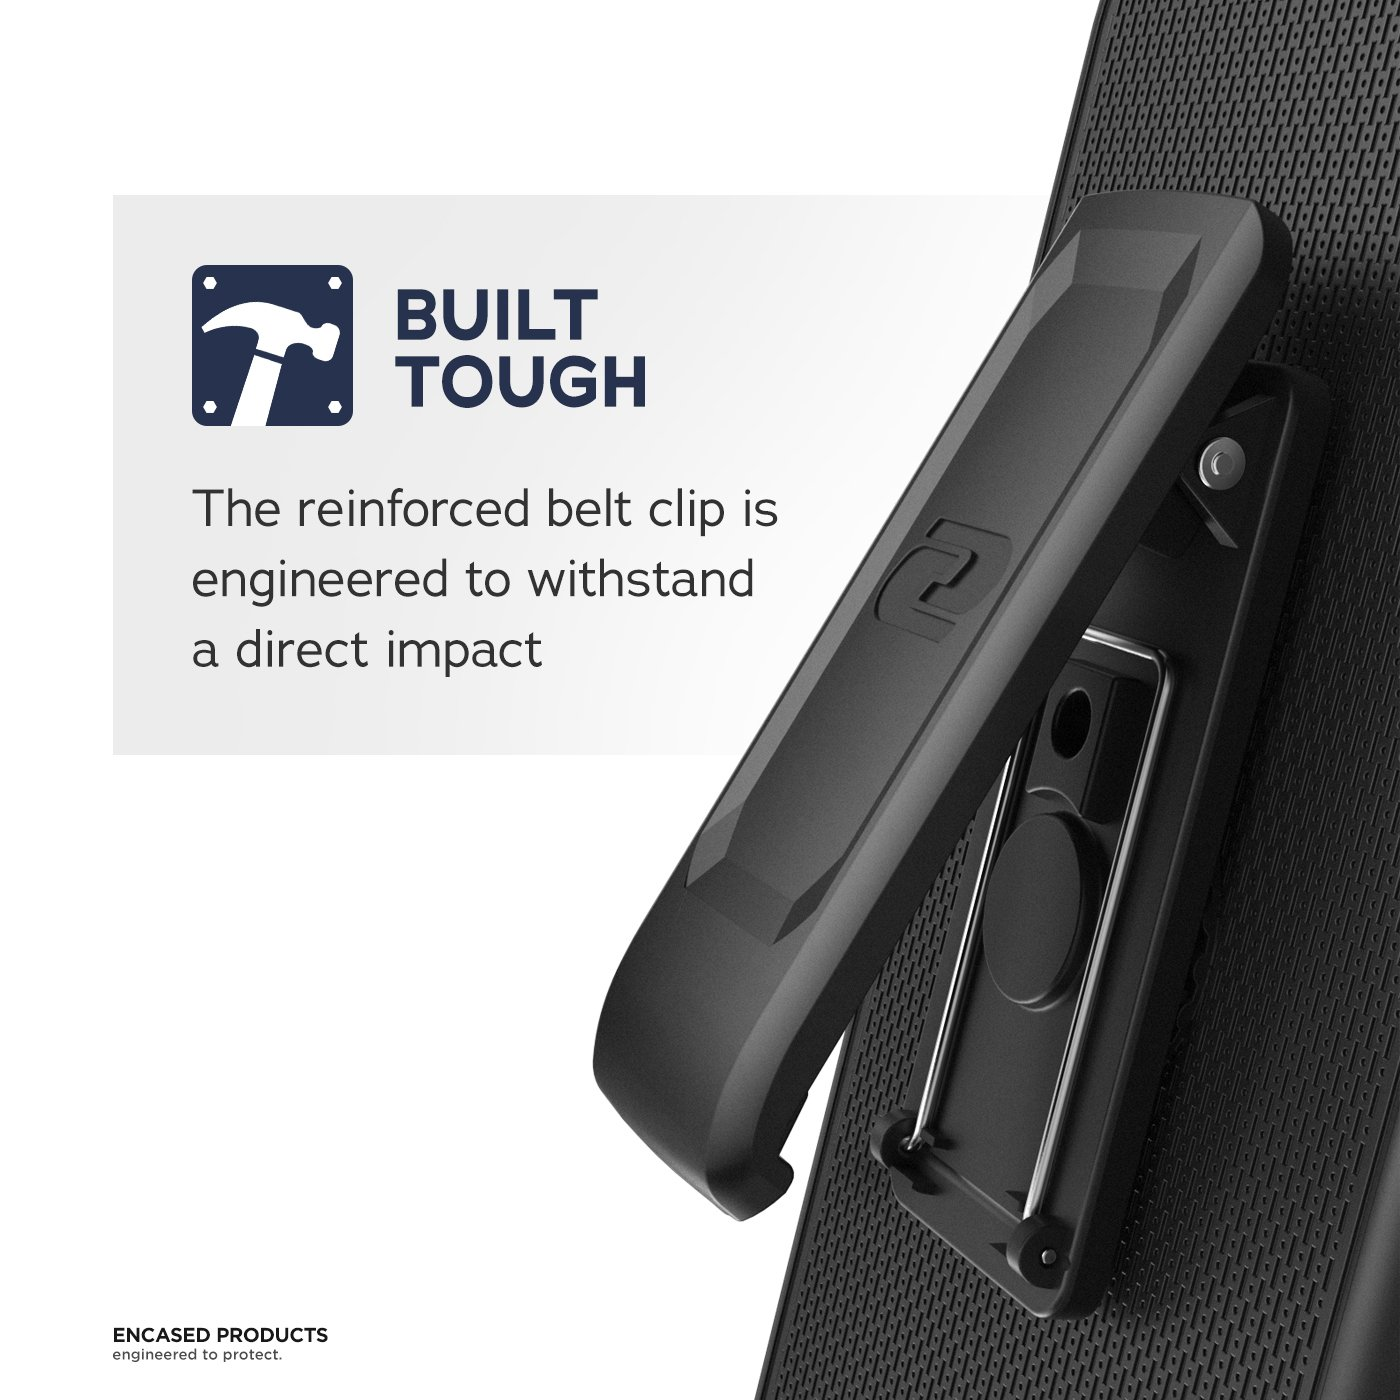 Encased DuraClip for iPhone 8 Plus Belt Clip Case, Thin Fit Holster Shell Combo Slim Cover with Rubberized Grip for Apple iPhone 8 Plus 5.5'' (Black) by Encased (Image #2)